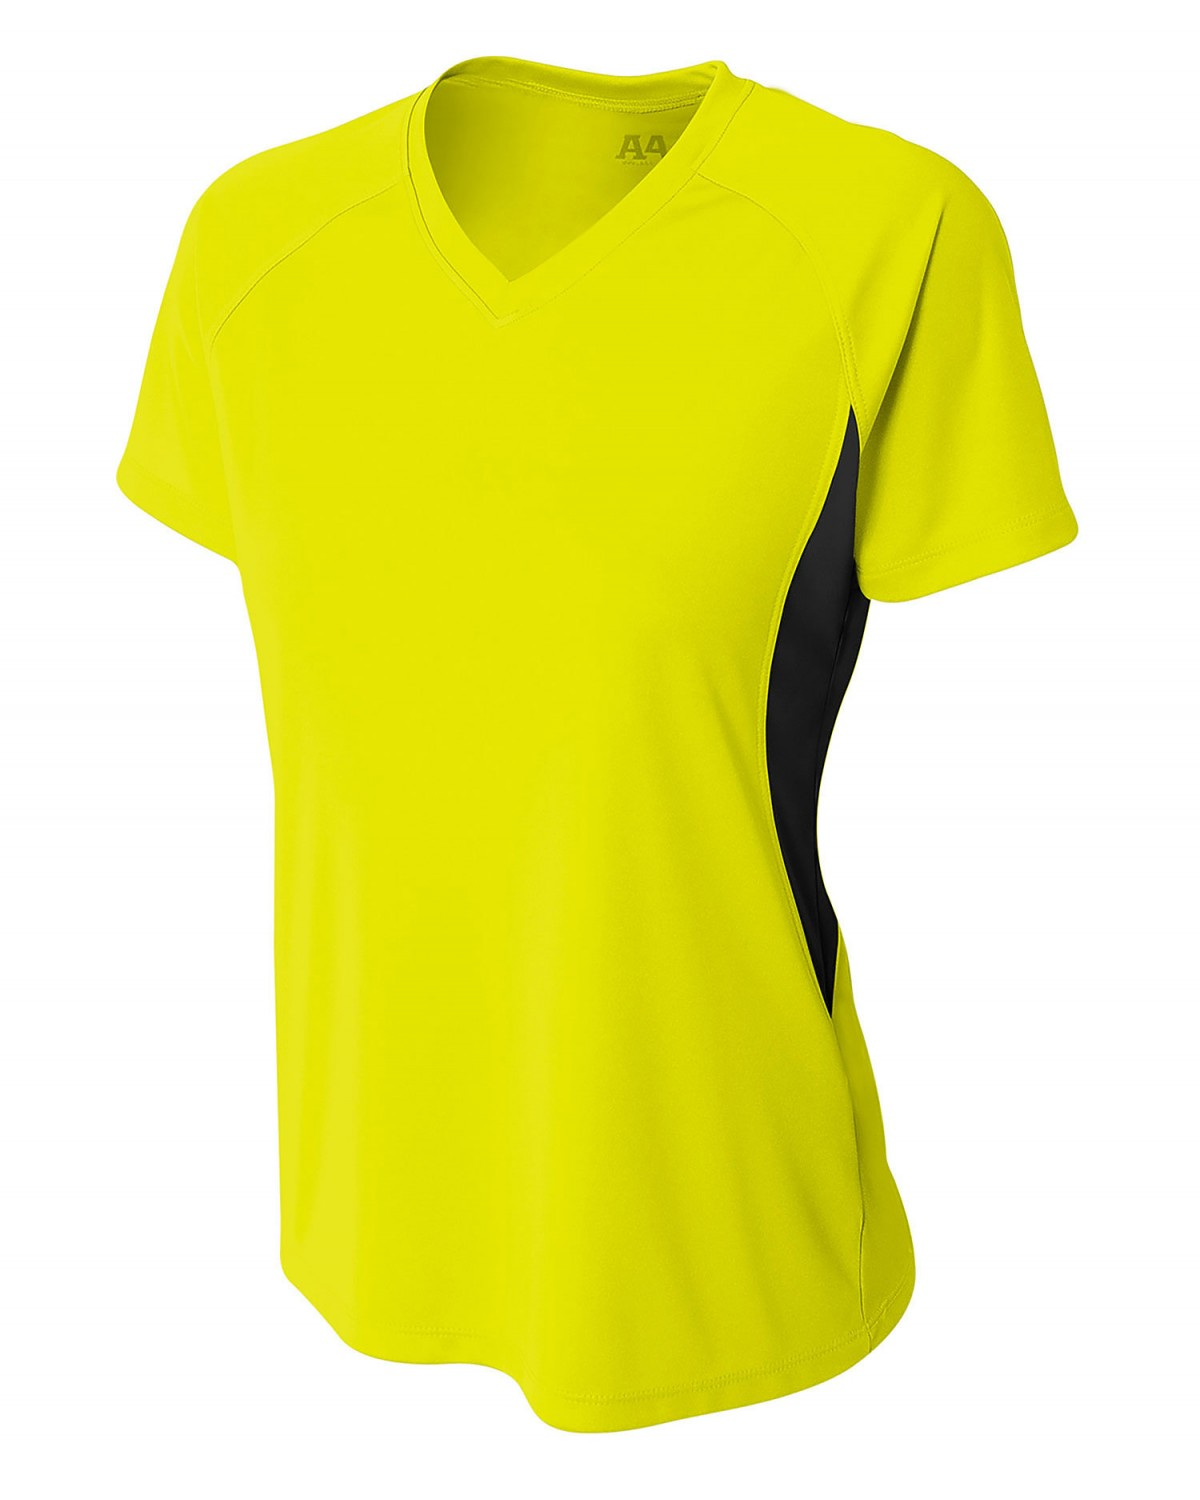 A4NW3223 A4 Safety Yellow/Black